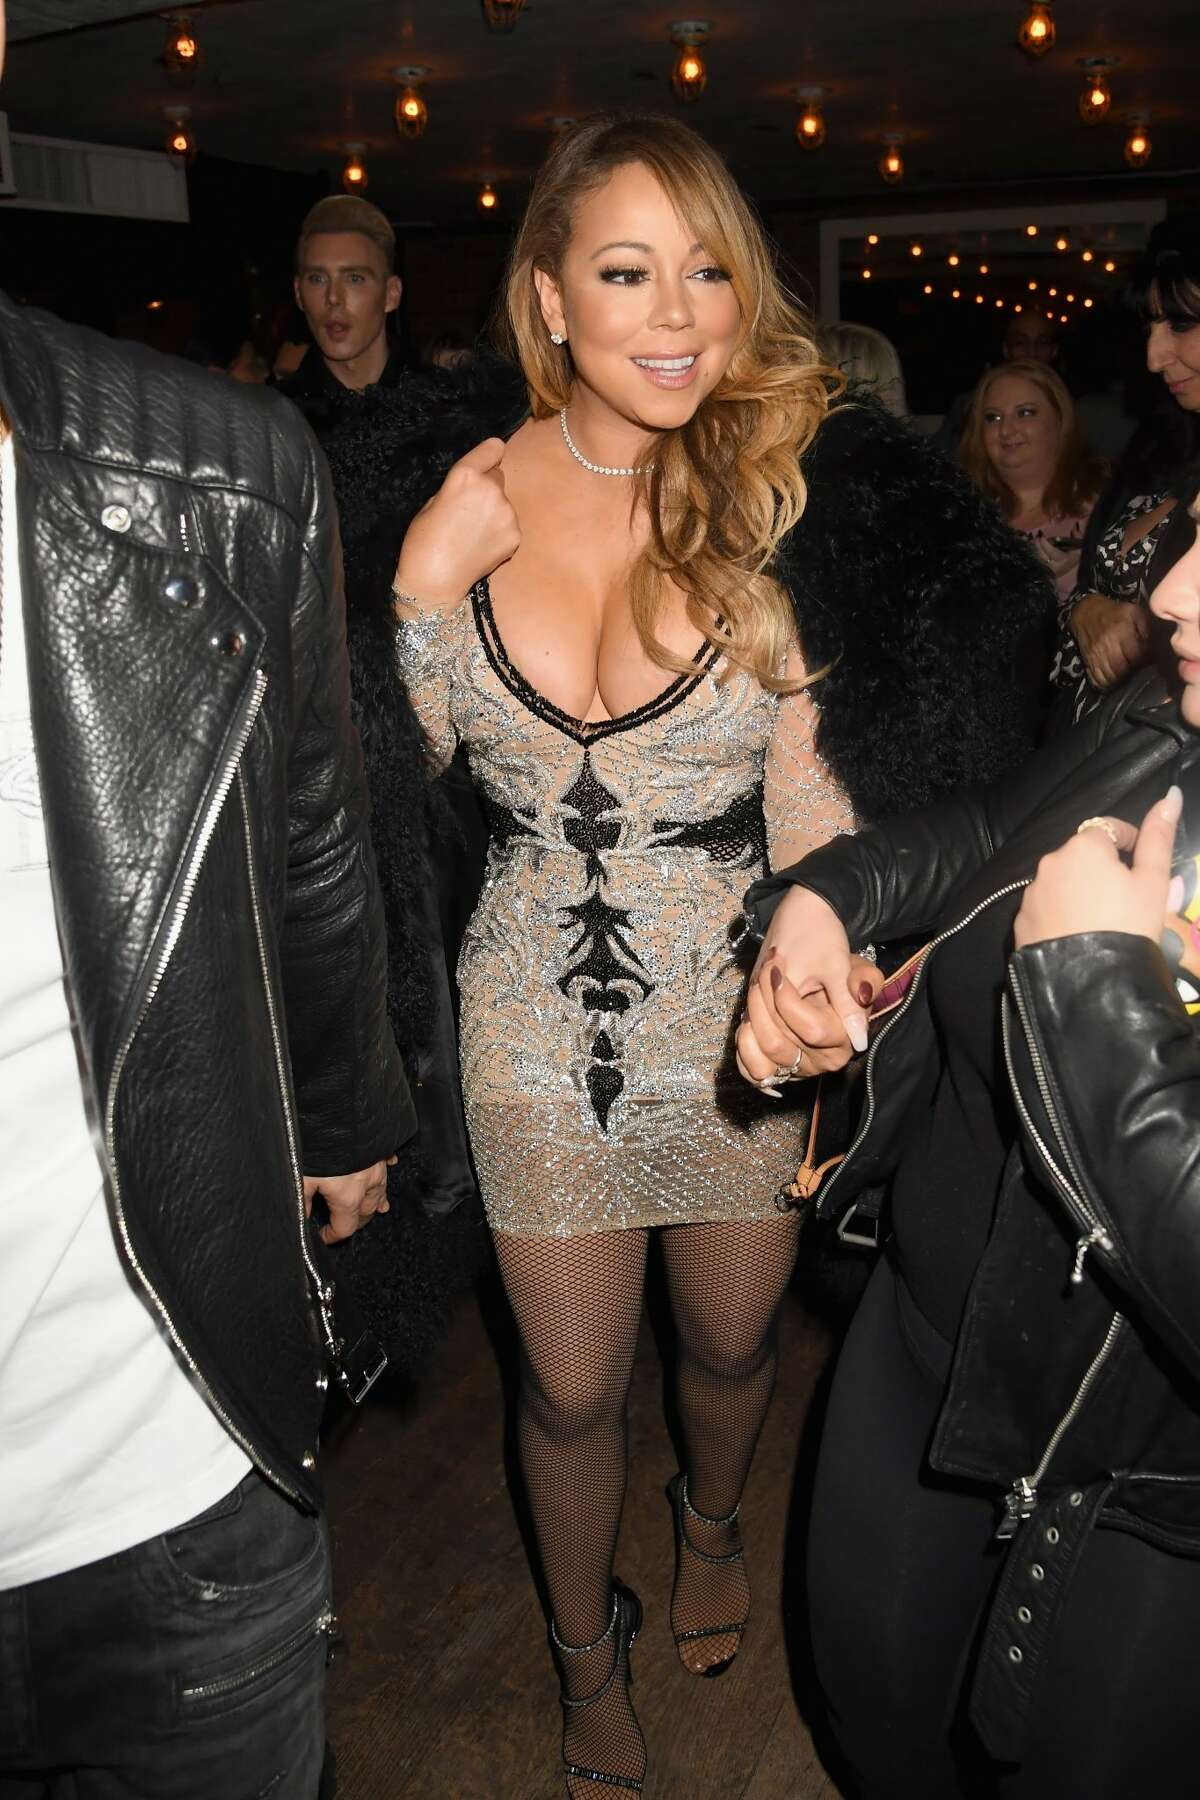 NEW YORK, NY - DECEMBER 04: Recording artist Mariah Carey attends MARIAH'S WORLD Viewing Party at Catch on December 4, 2016 in New York City. (Photo by Jeff Kravitz/FilmMagic for Mirage Entertainment)